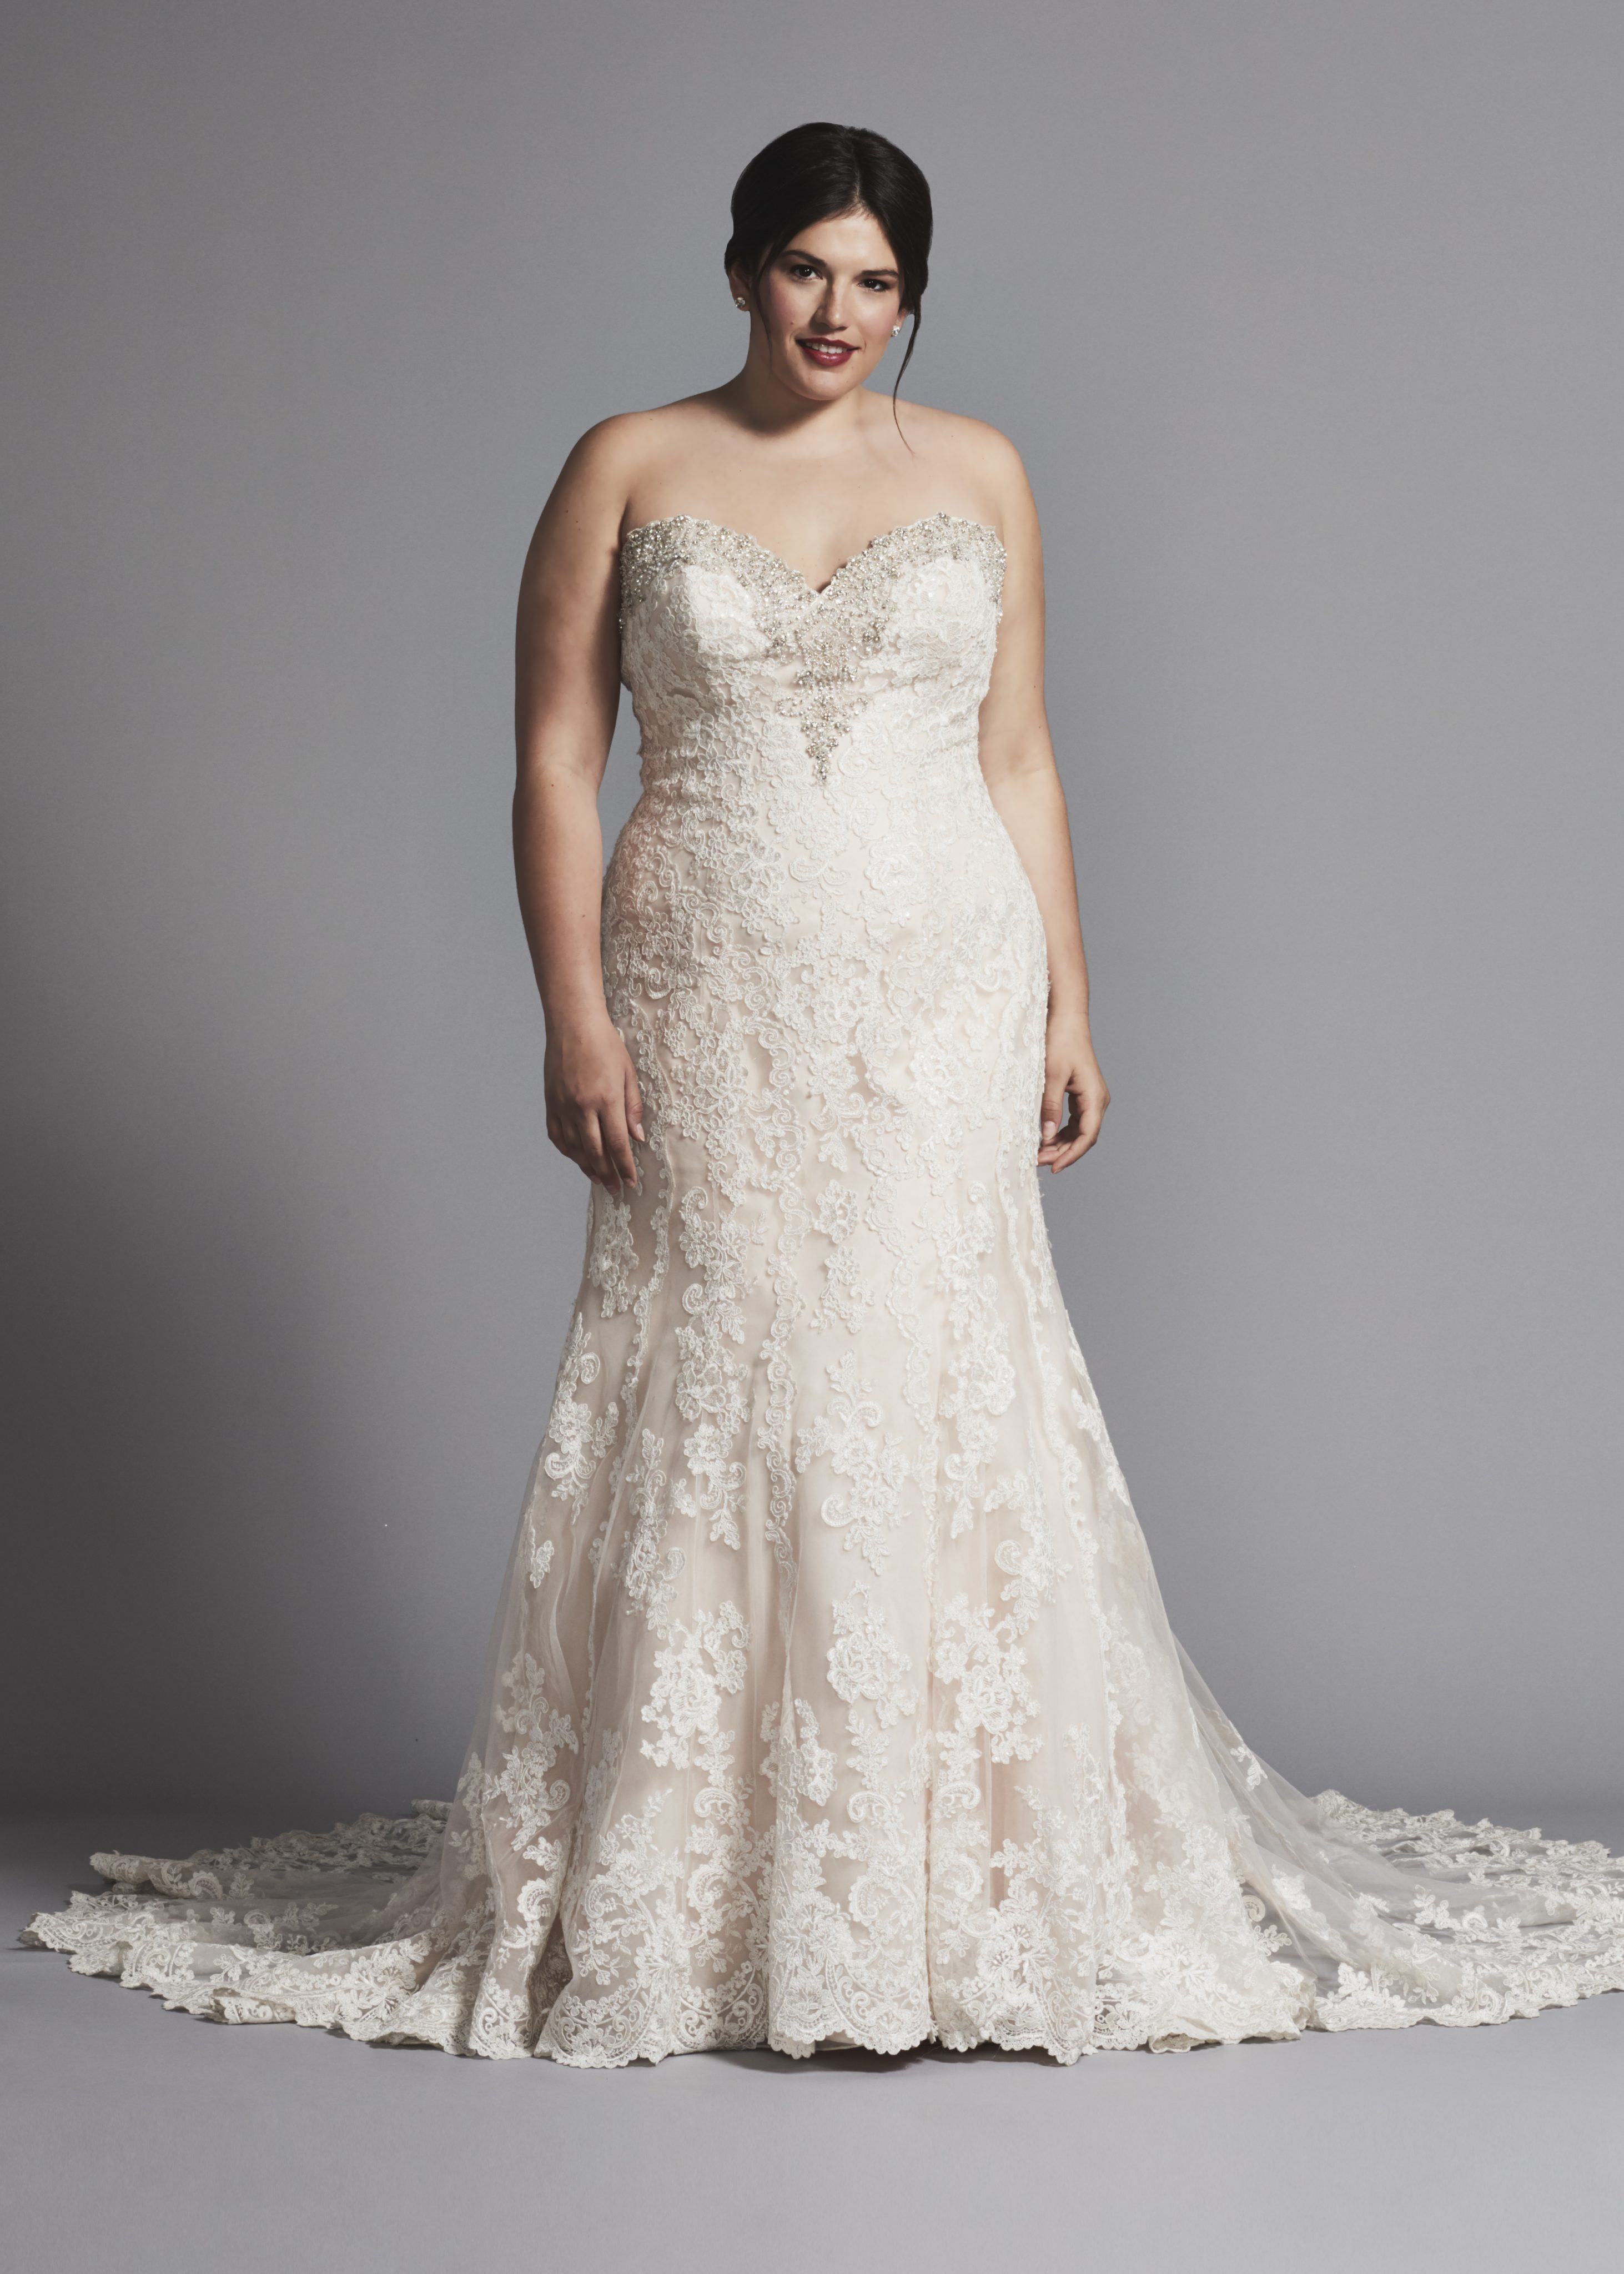 Fit And Flare Lace Wedding Dress With Beading At Neckline ...